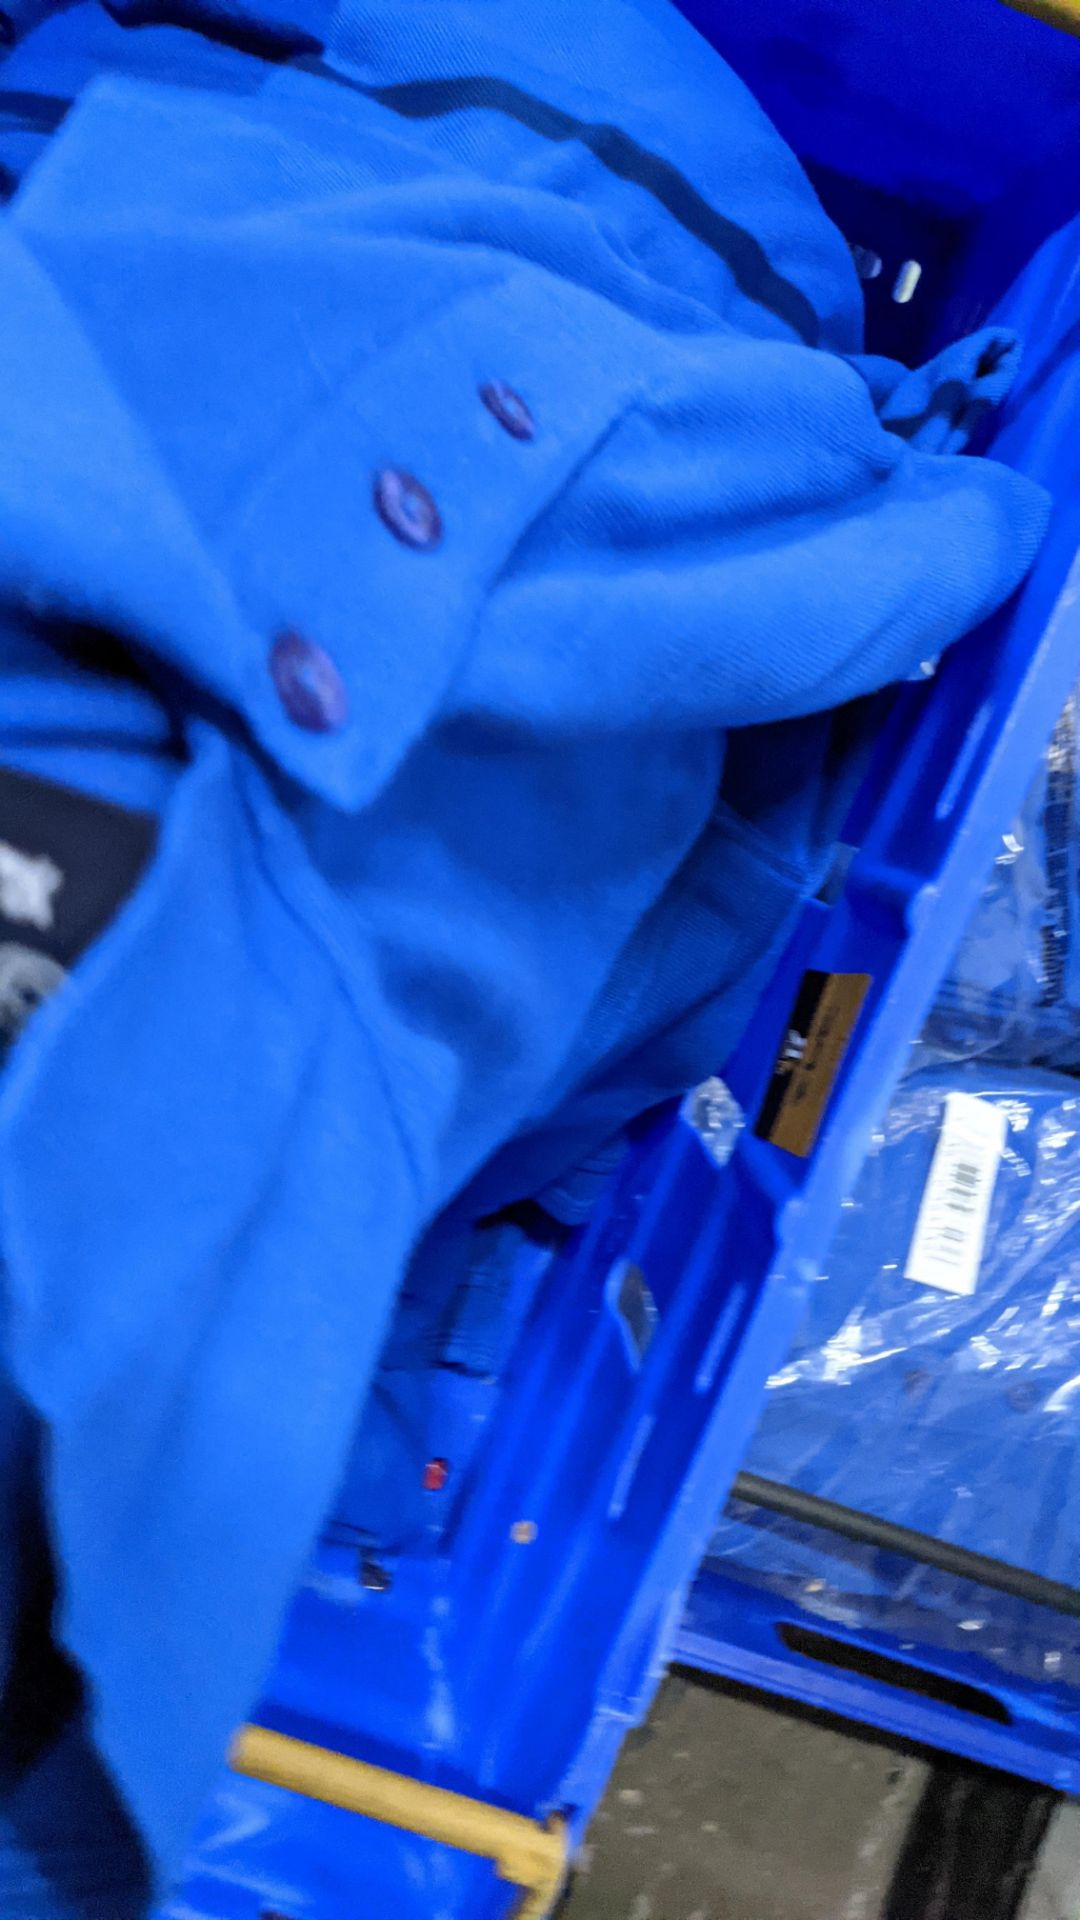 Approx 30 off royal blue polo shirts (2 crates) - Image 4 of 6